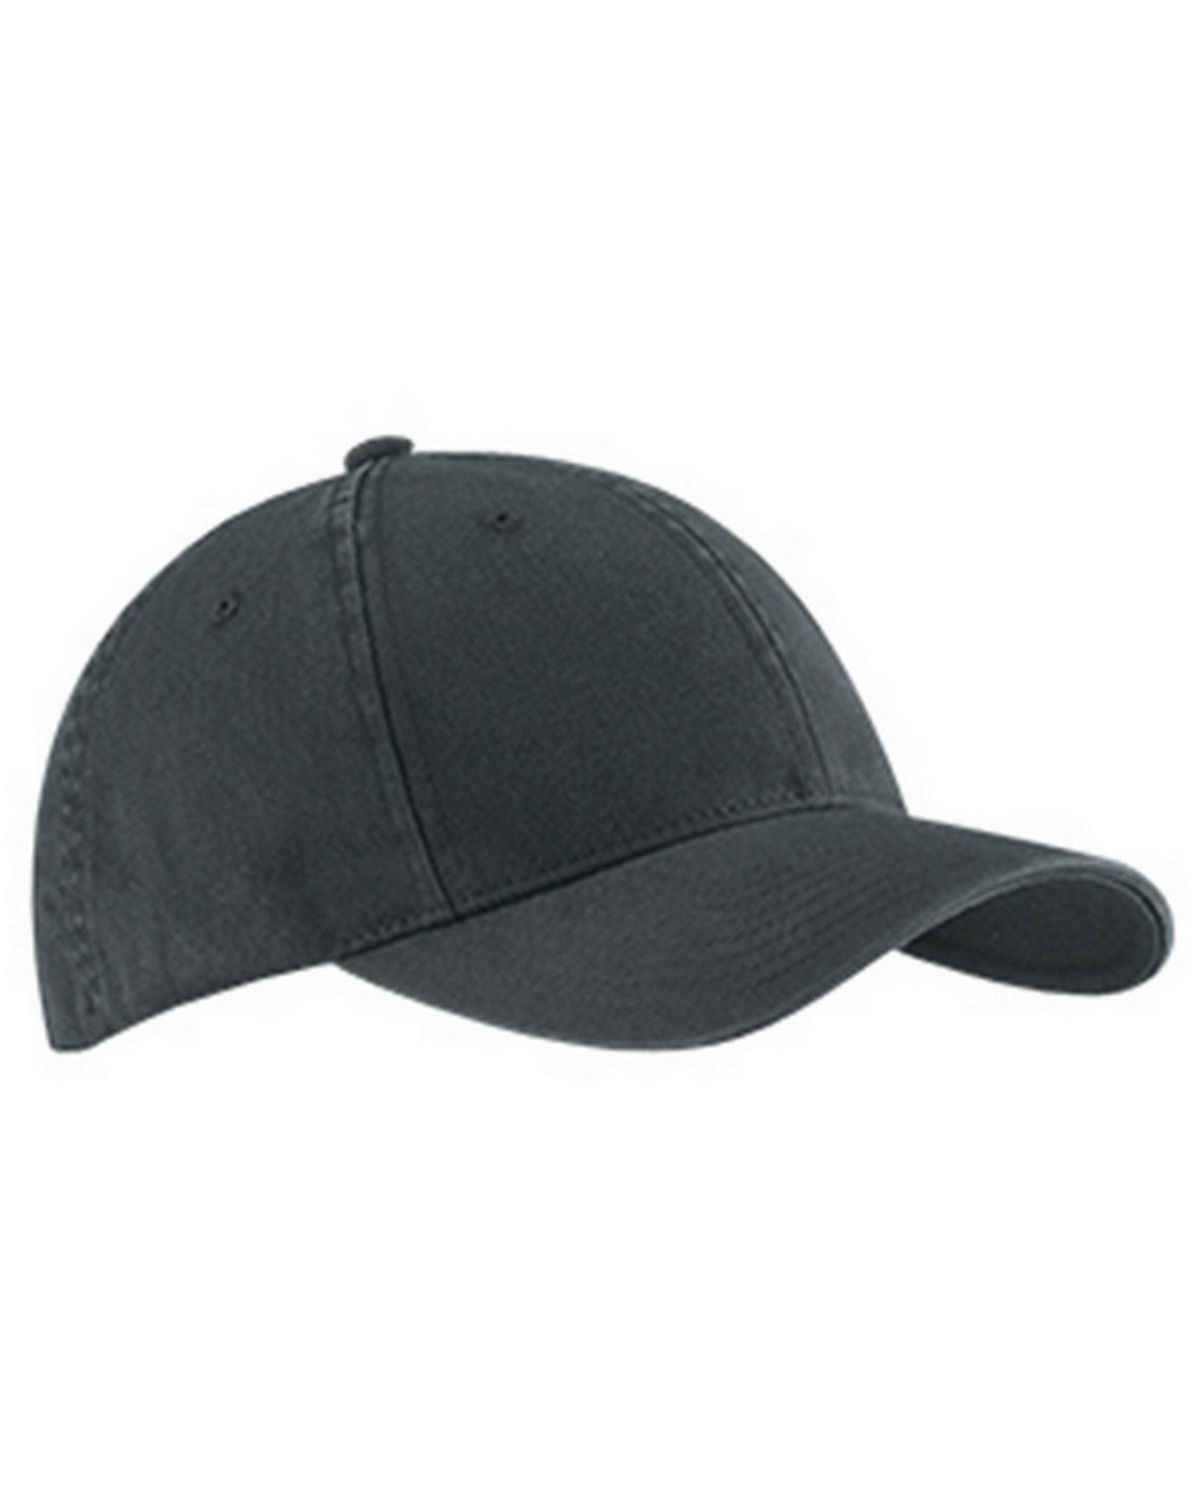 e3e2d66256b Buy Flexfit 6997C Garment Washed Cotton Twill Cap